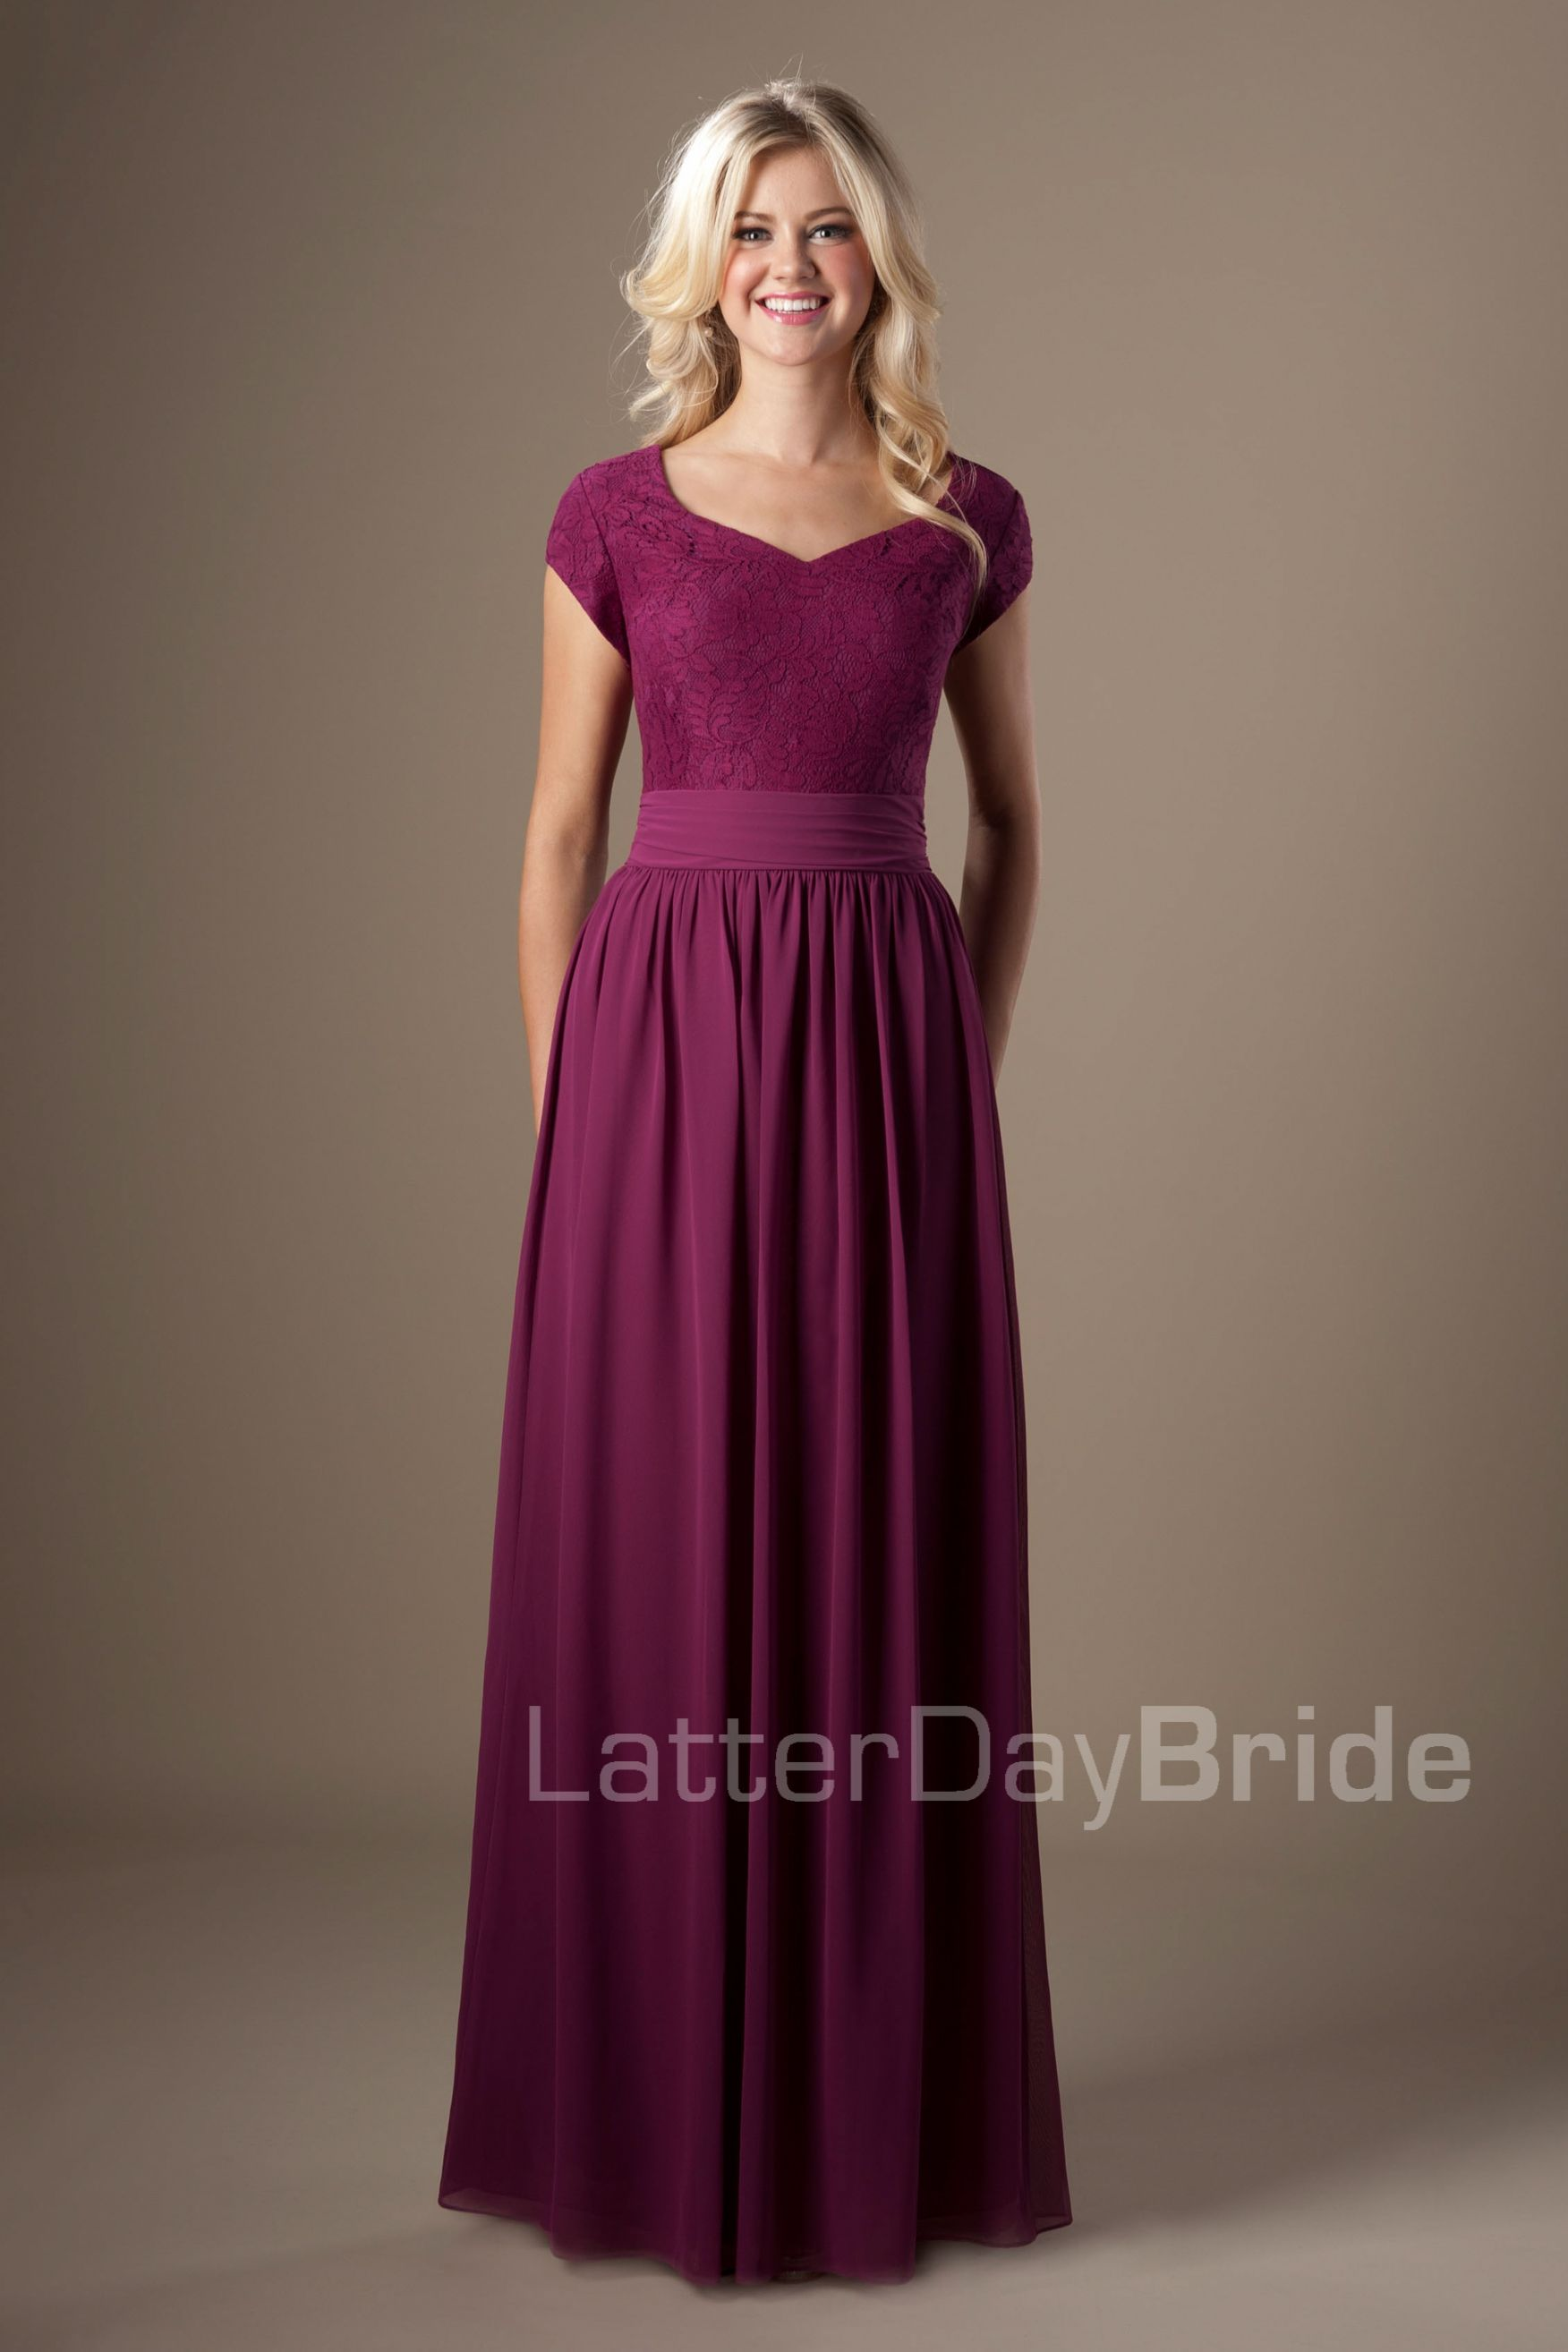 Modest Bridesmaid Dresses : June. Available at Latterday Bride. See ...